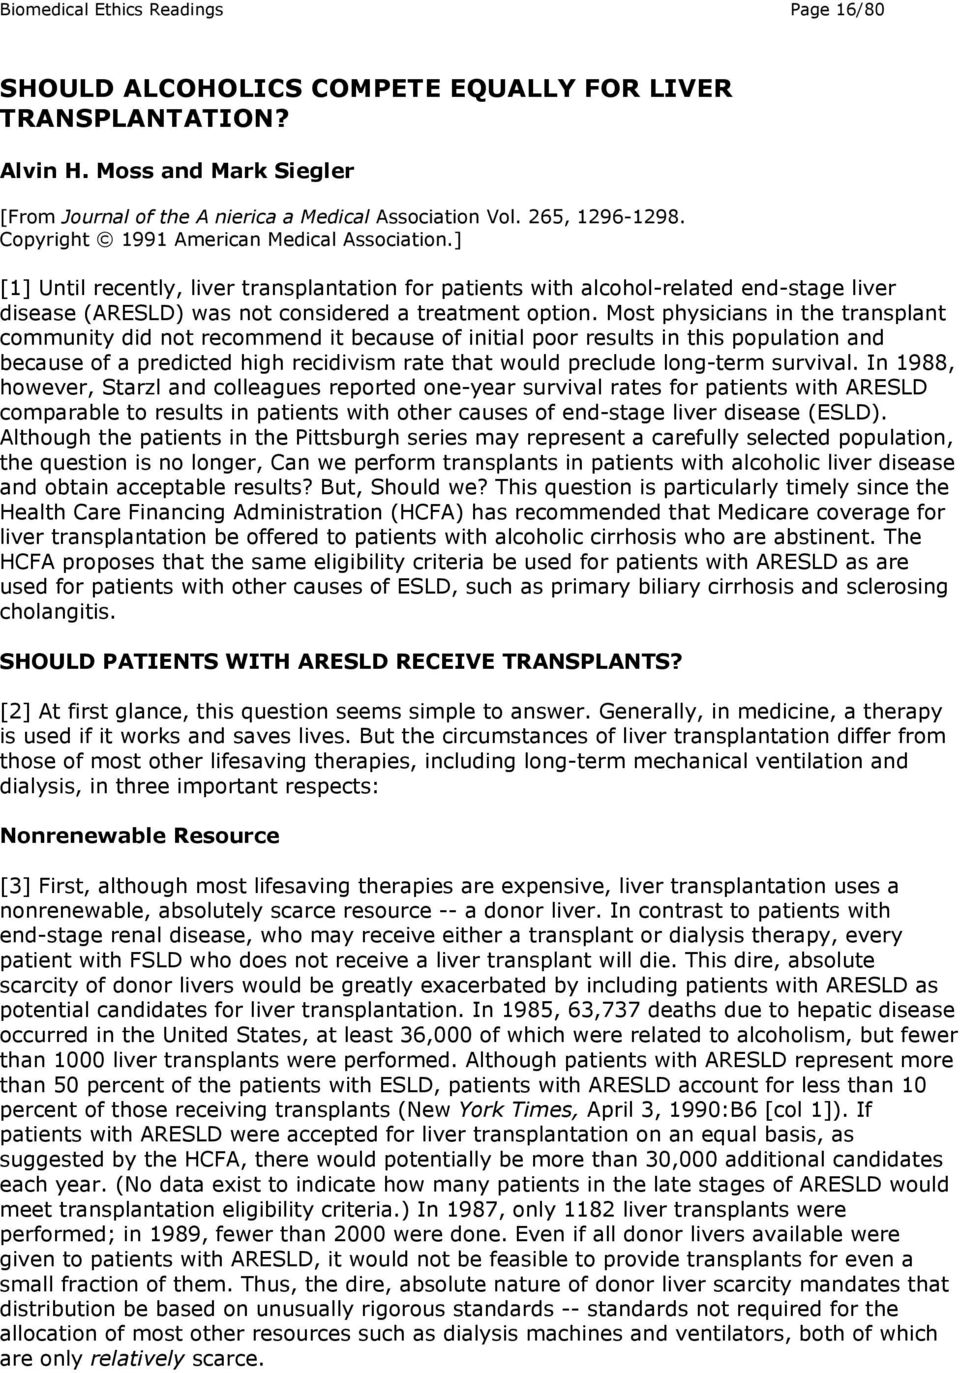 ] [1] Until recently, liver transplantation for patients with alcohol-related end-stage liver disease (ARESLD) was not considered a treatment option.